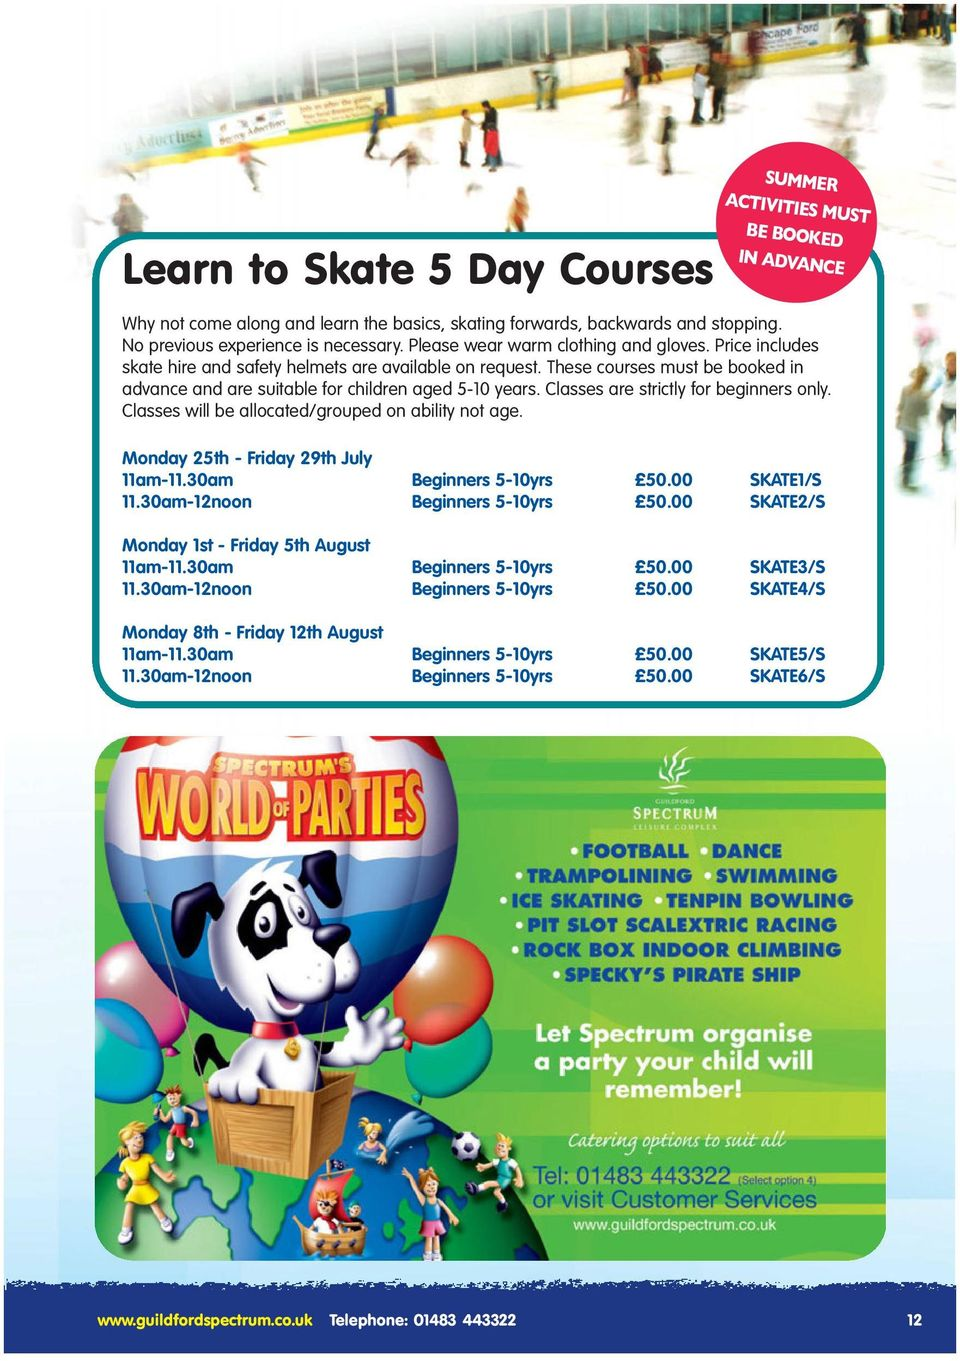 Classes are strictly for beginners only. Classes will be allocated/grouped on ability not age. Monday 25th - Friday 29th July 11am-11.30am Beginners 5-10yrs 50.00 SKATE1/S 11.